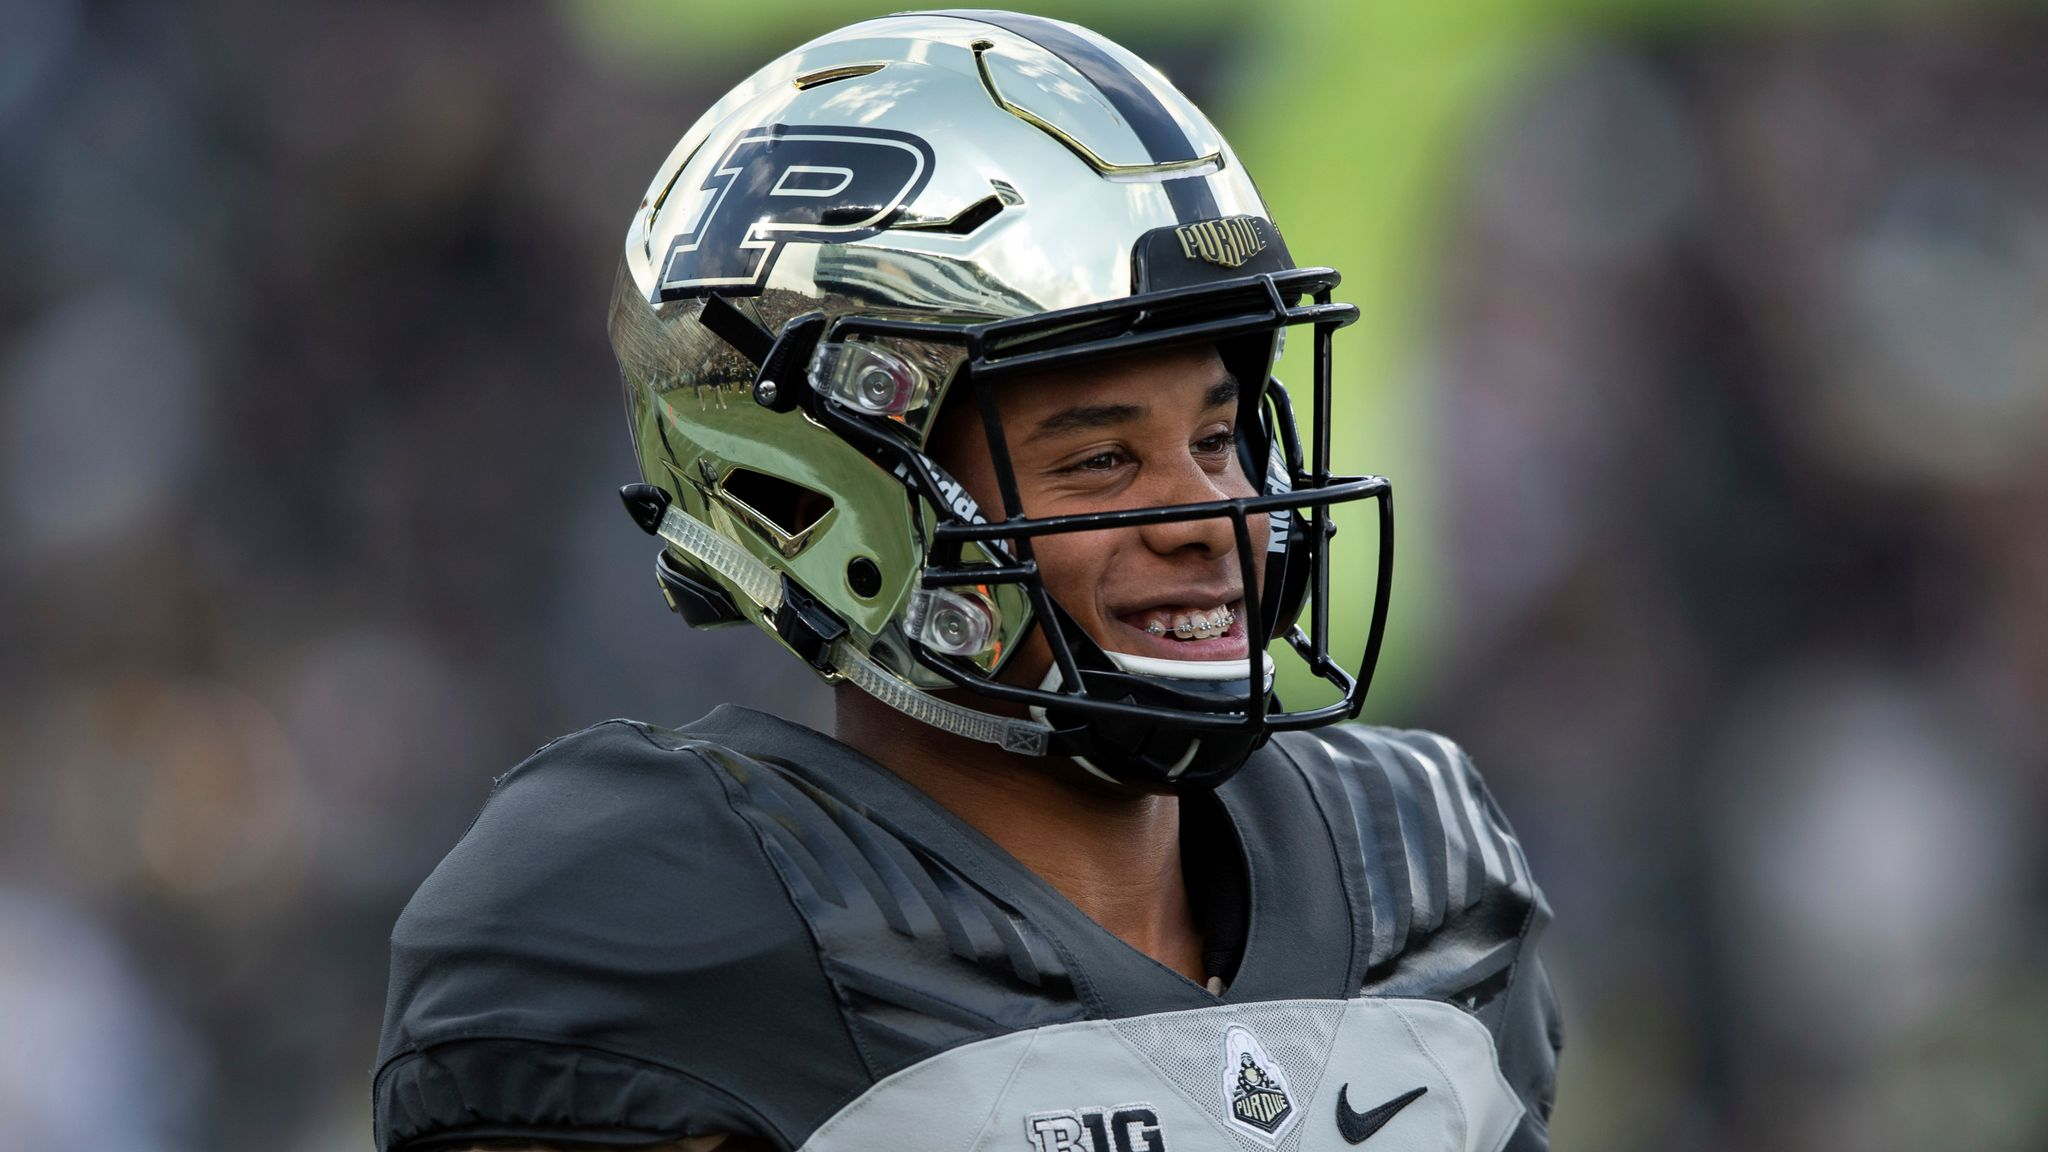 Rondale Moore exclusive: 1am quarterback calls, record-breaking debut, Ohio  State heroics, chasing perfection | NFL News | Sky Sports